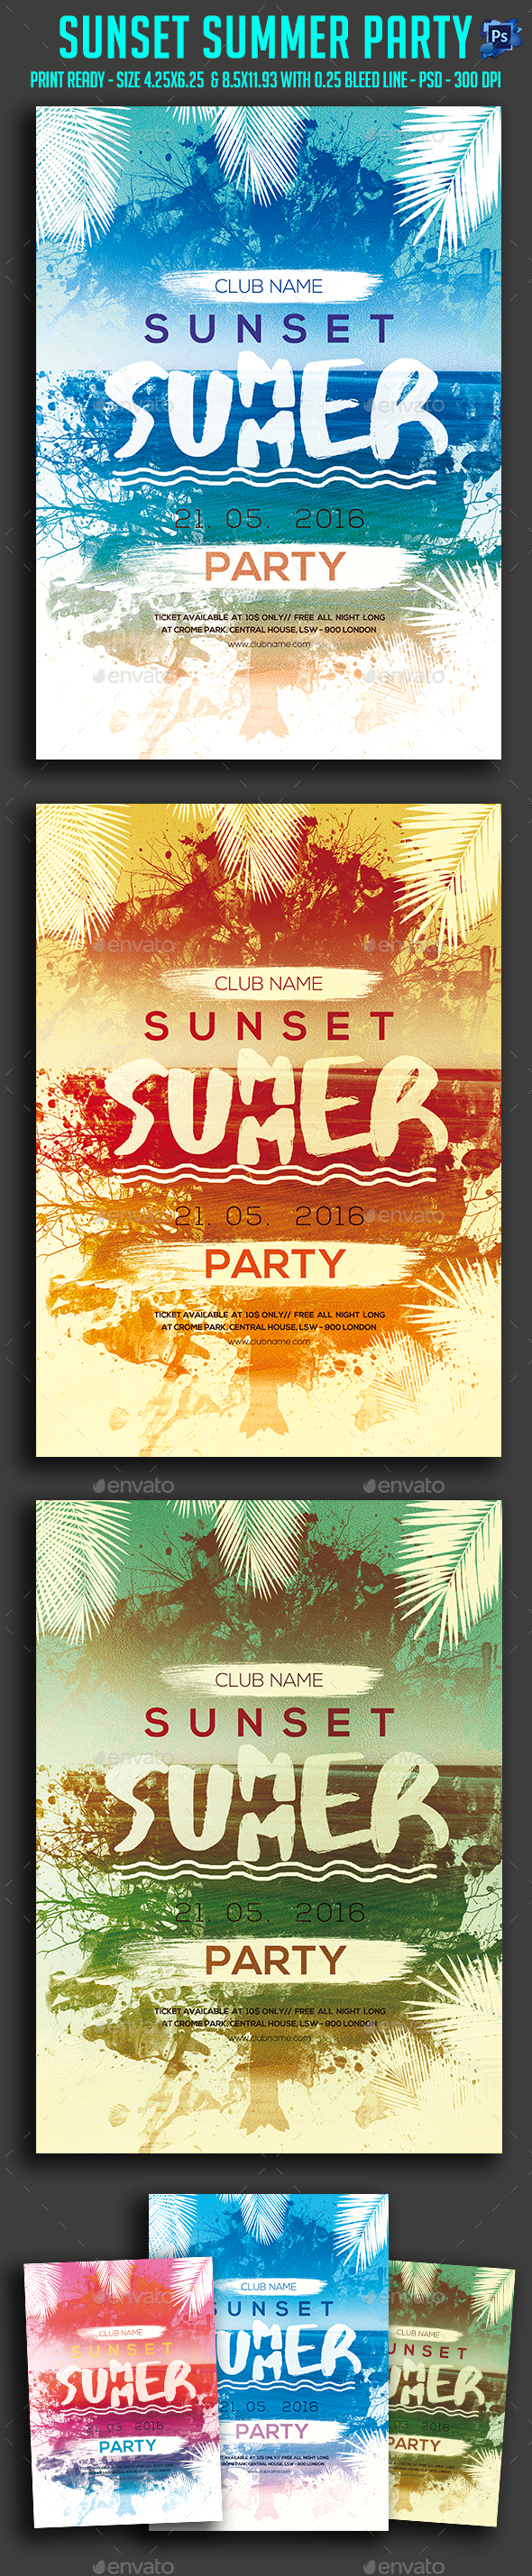 Sunset Summer Party Flyer